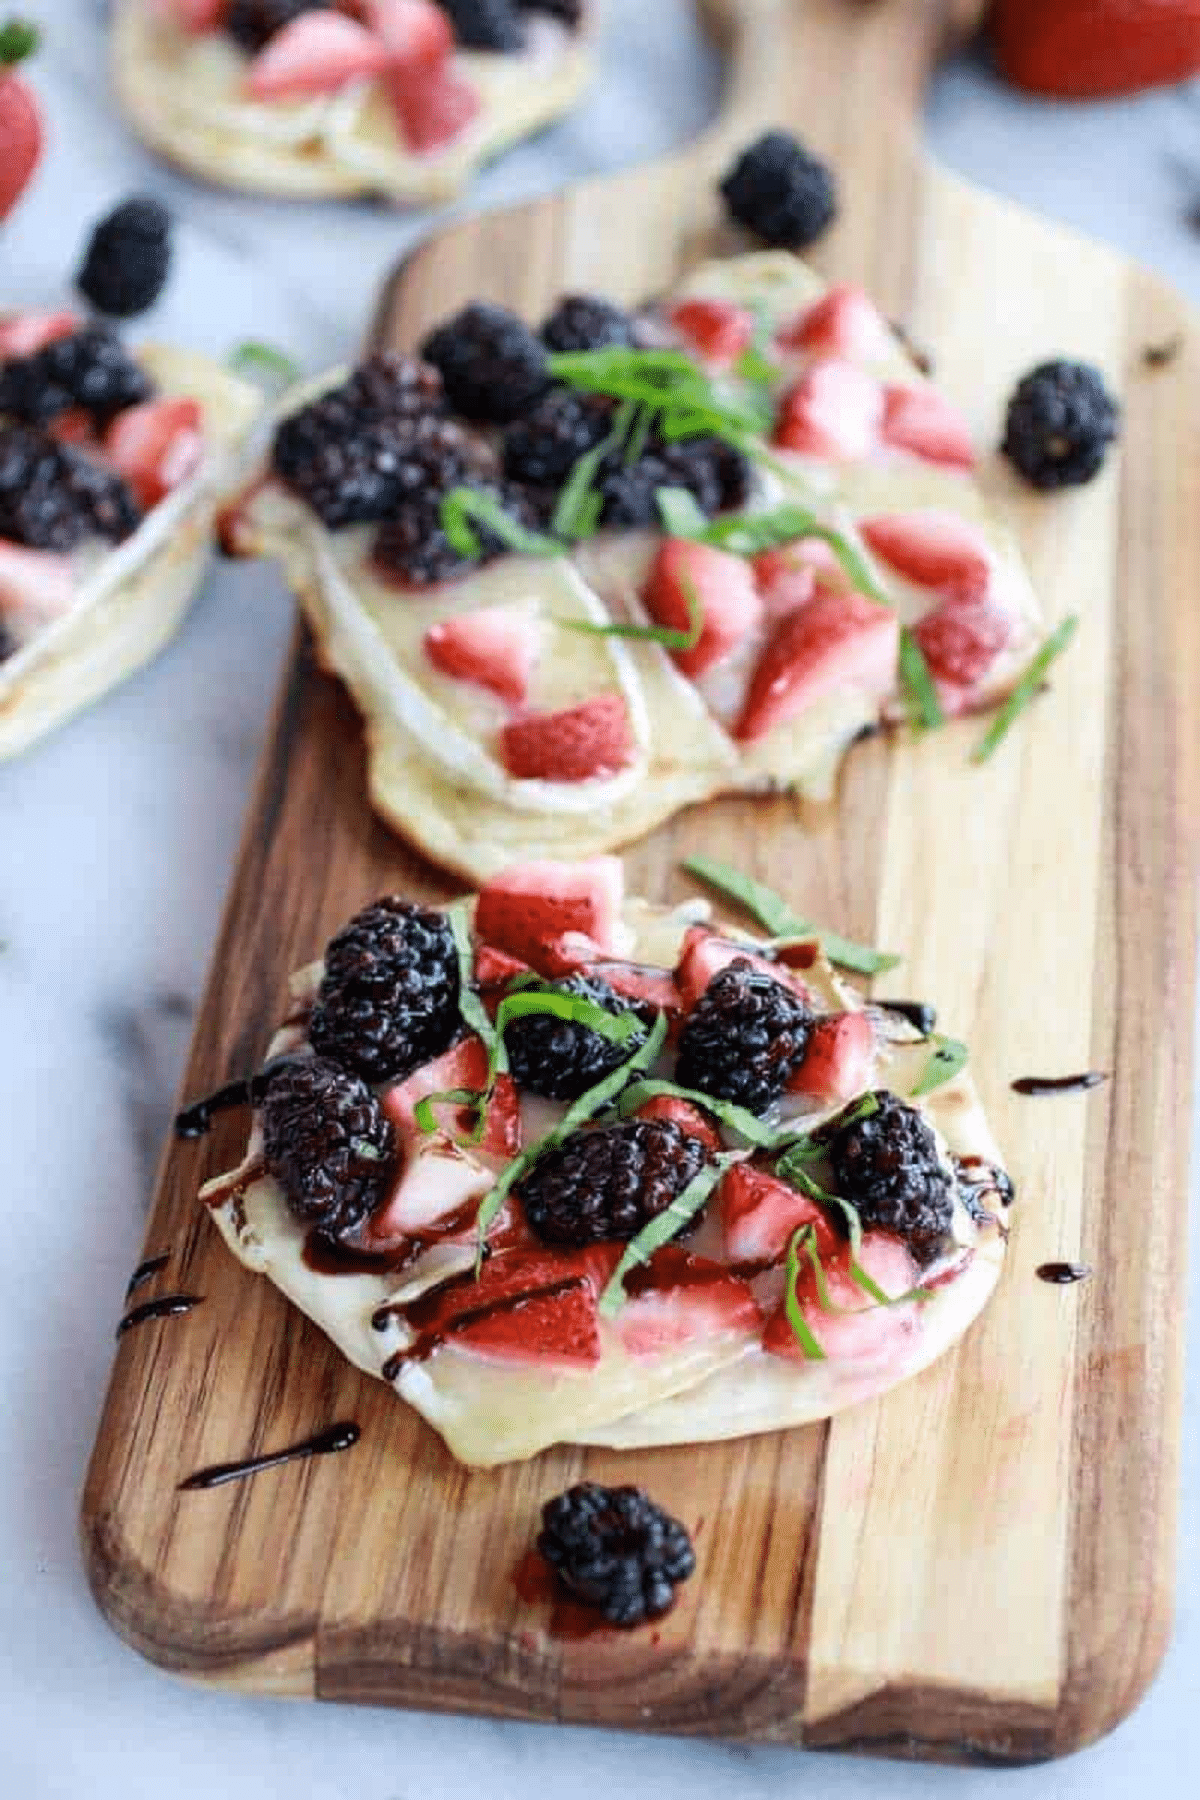 Pizza with berries on top on cutting board